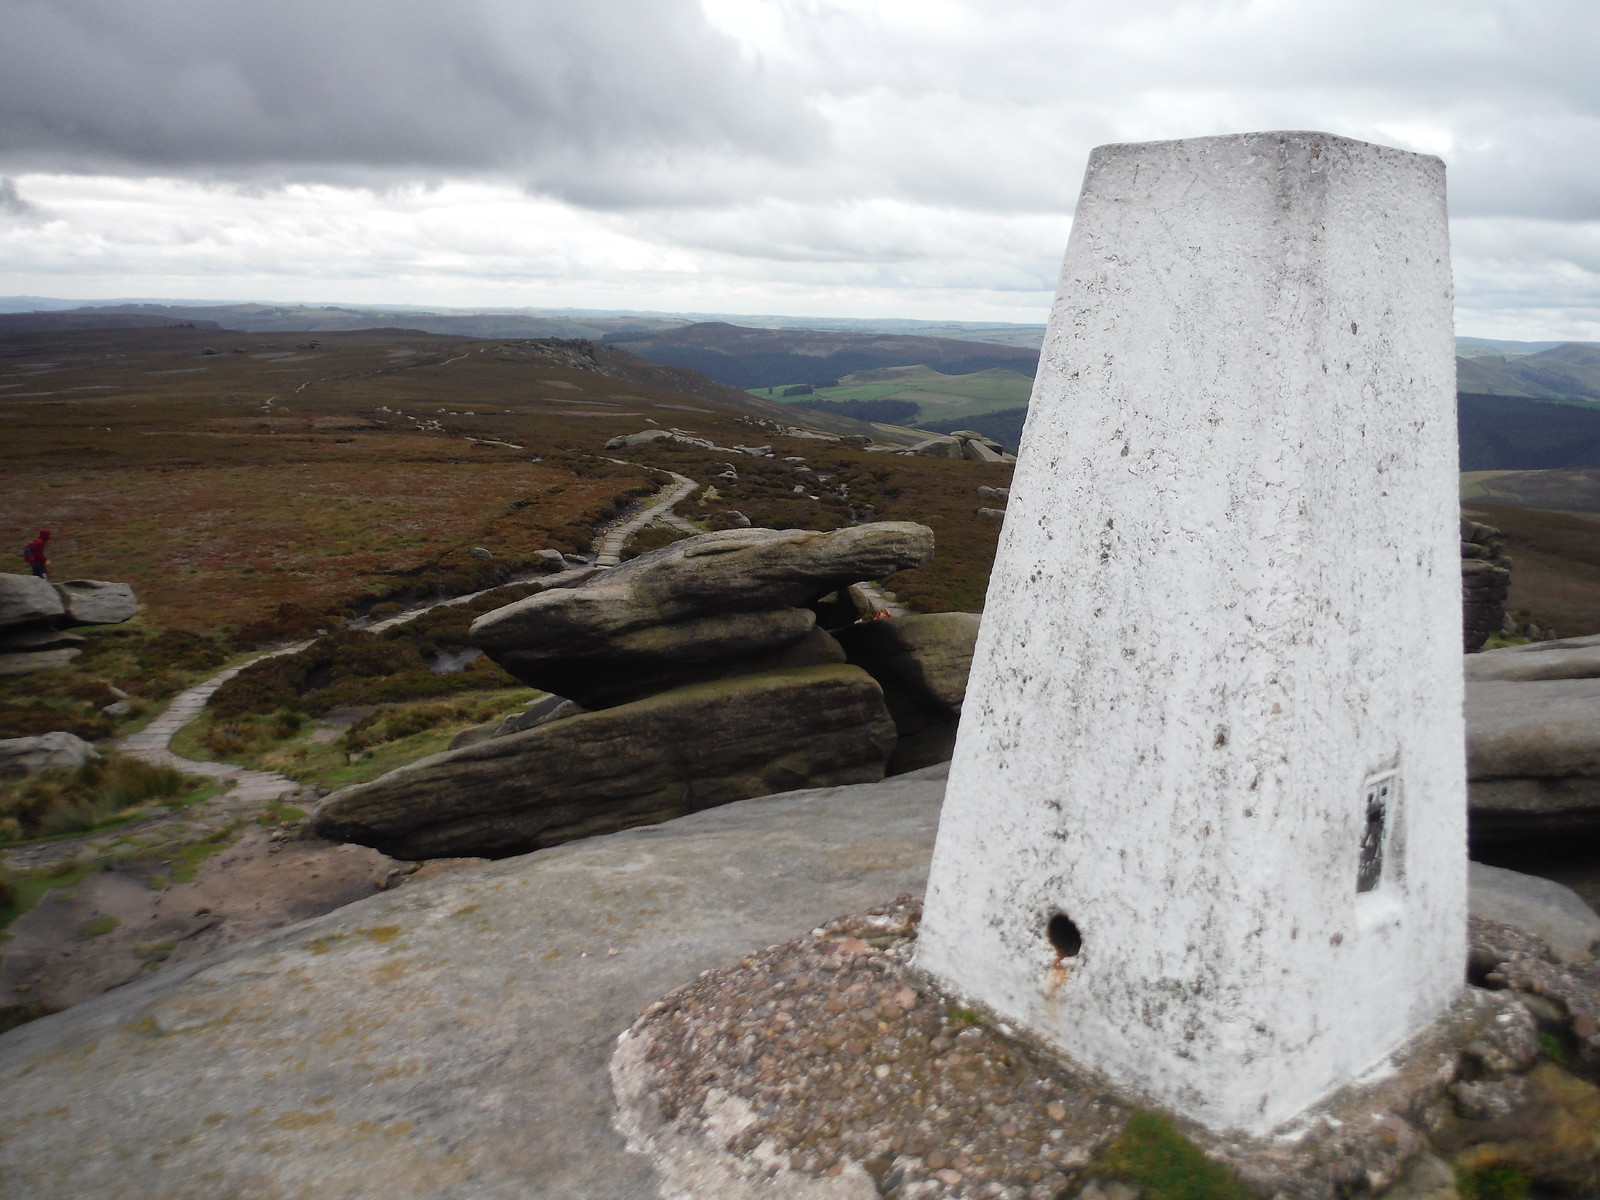 View along Derwent Edge from Back Tor's Trig Point towards Win Hill SWC Walk 348 - Ladybower Inn Circular (via Derwent Edges and Strines)